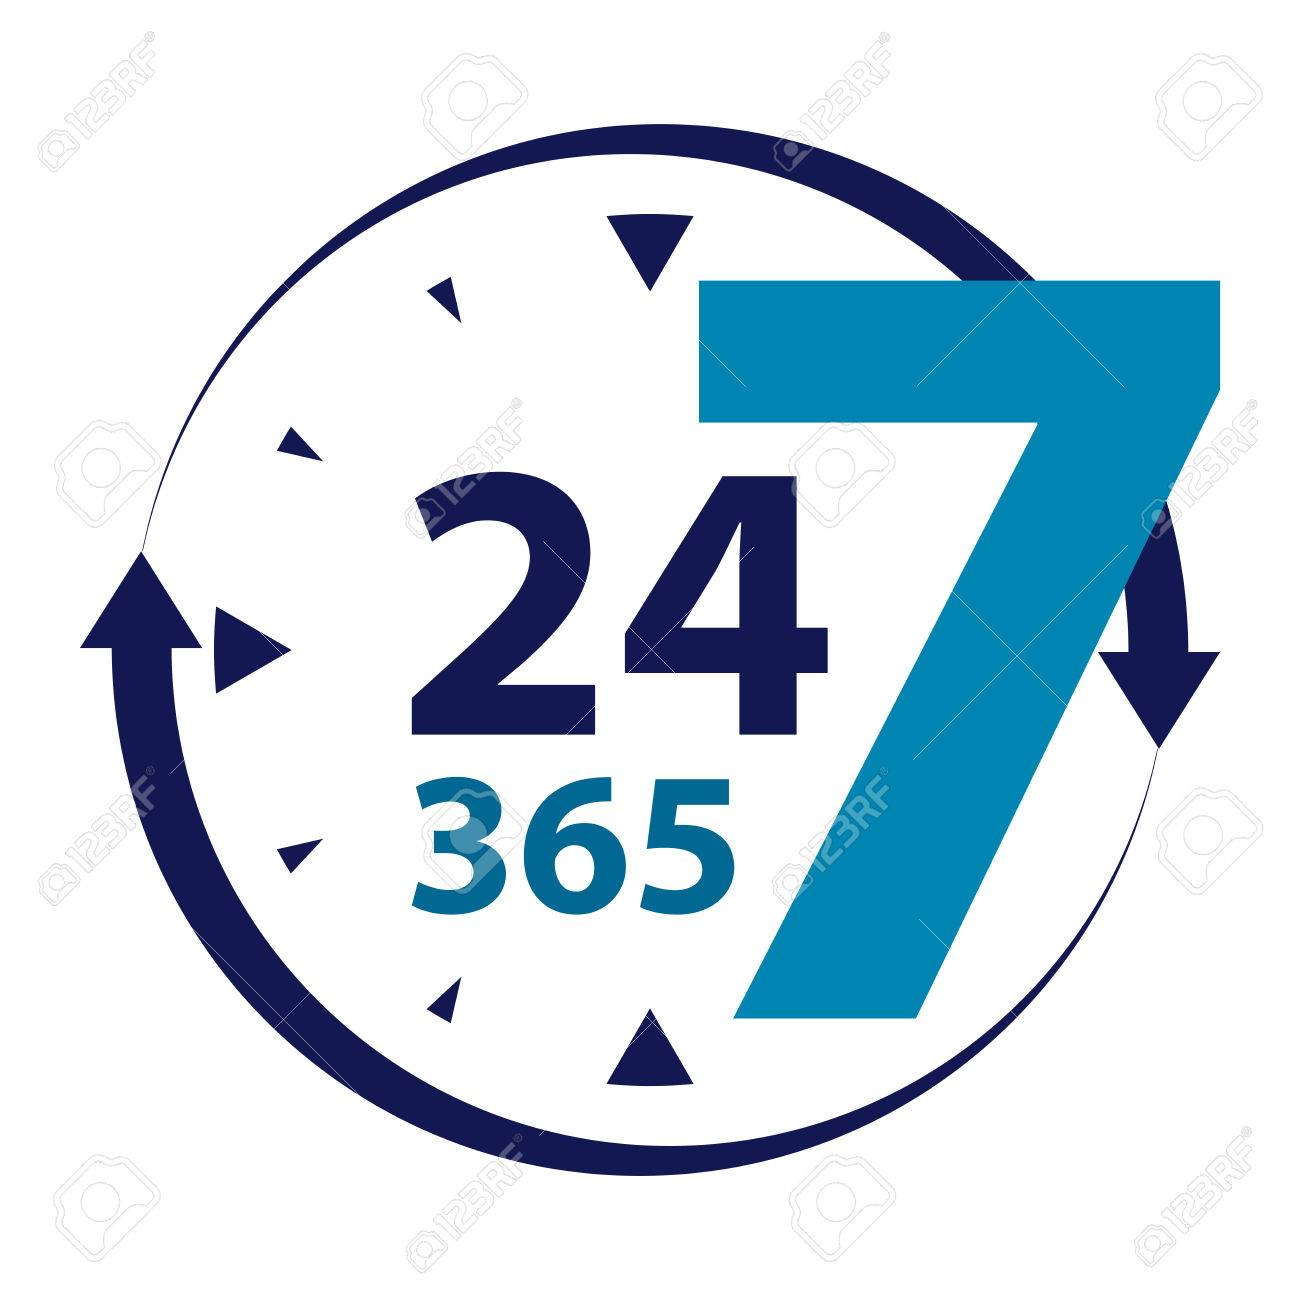 blue 24 7 365 with clock and arrow sign icon or label isolated